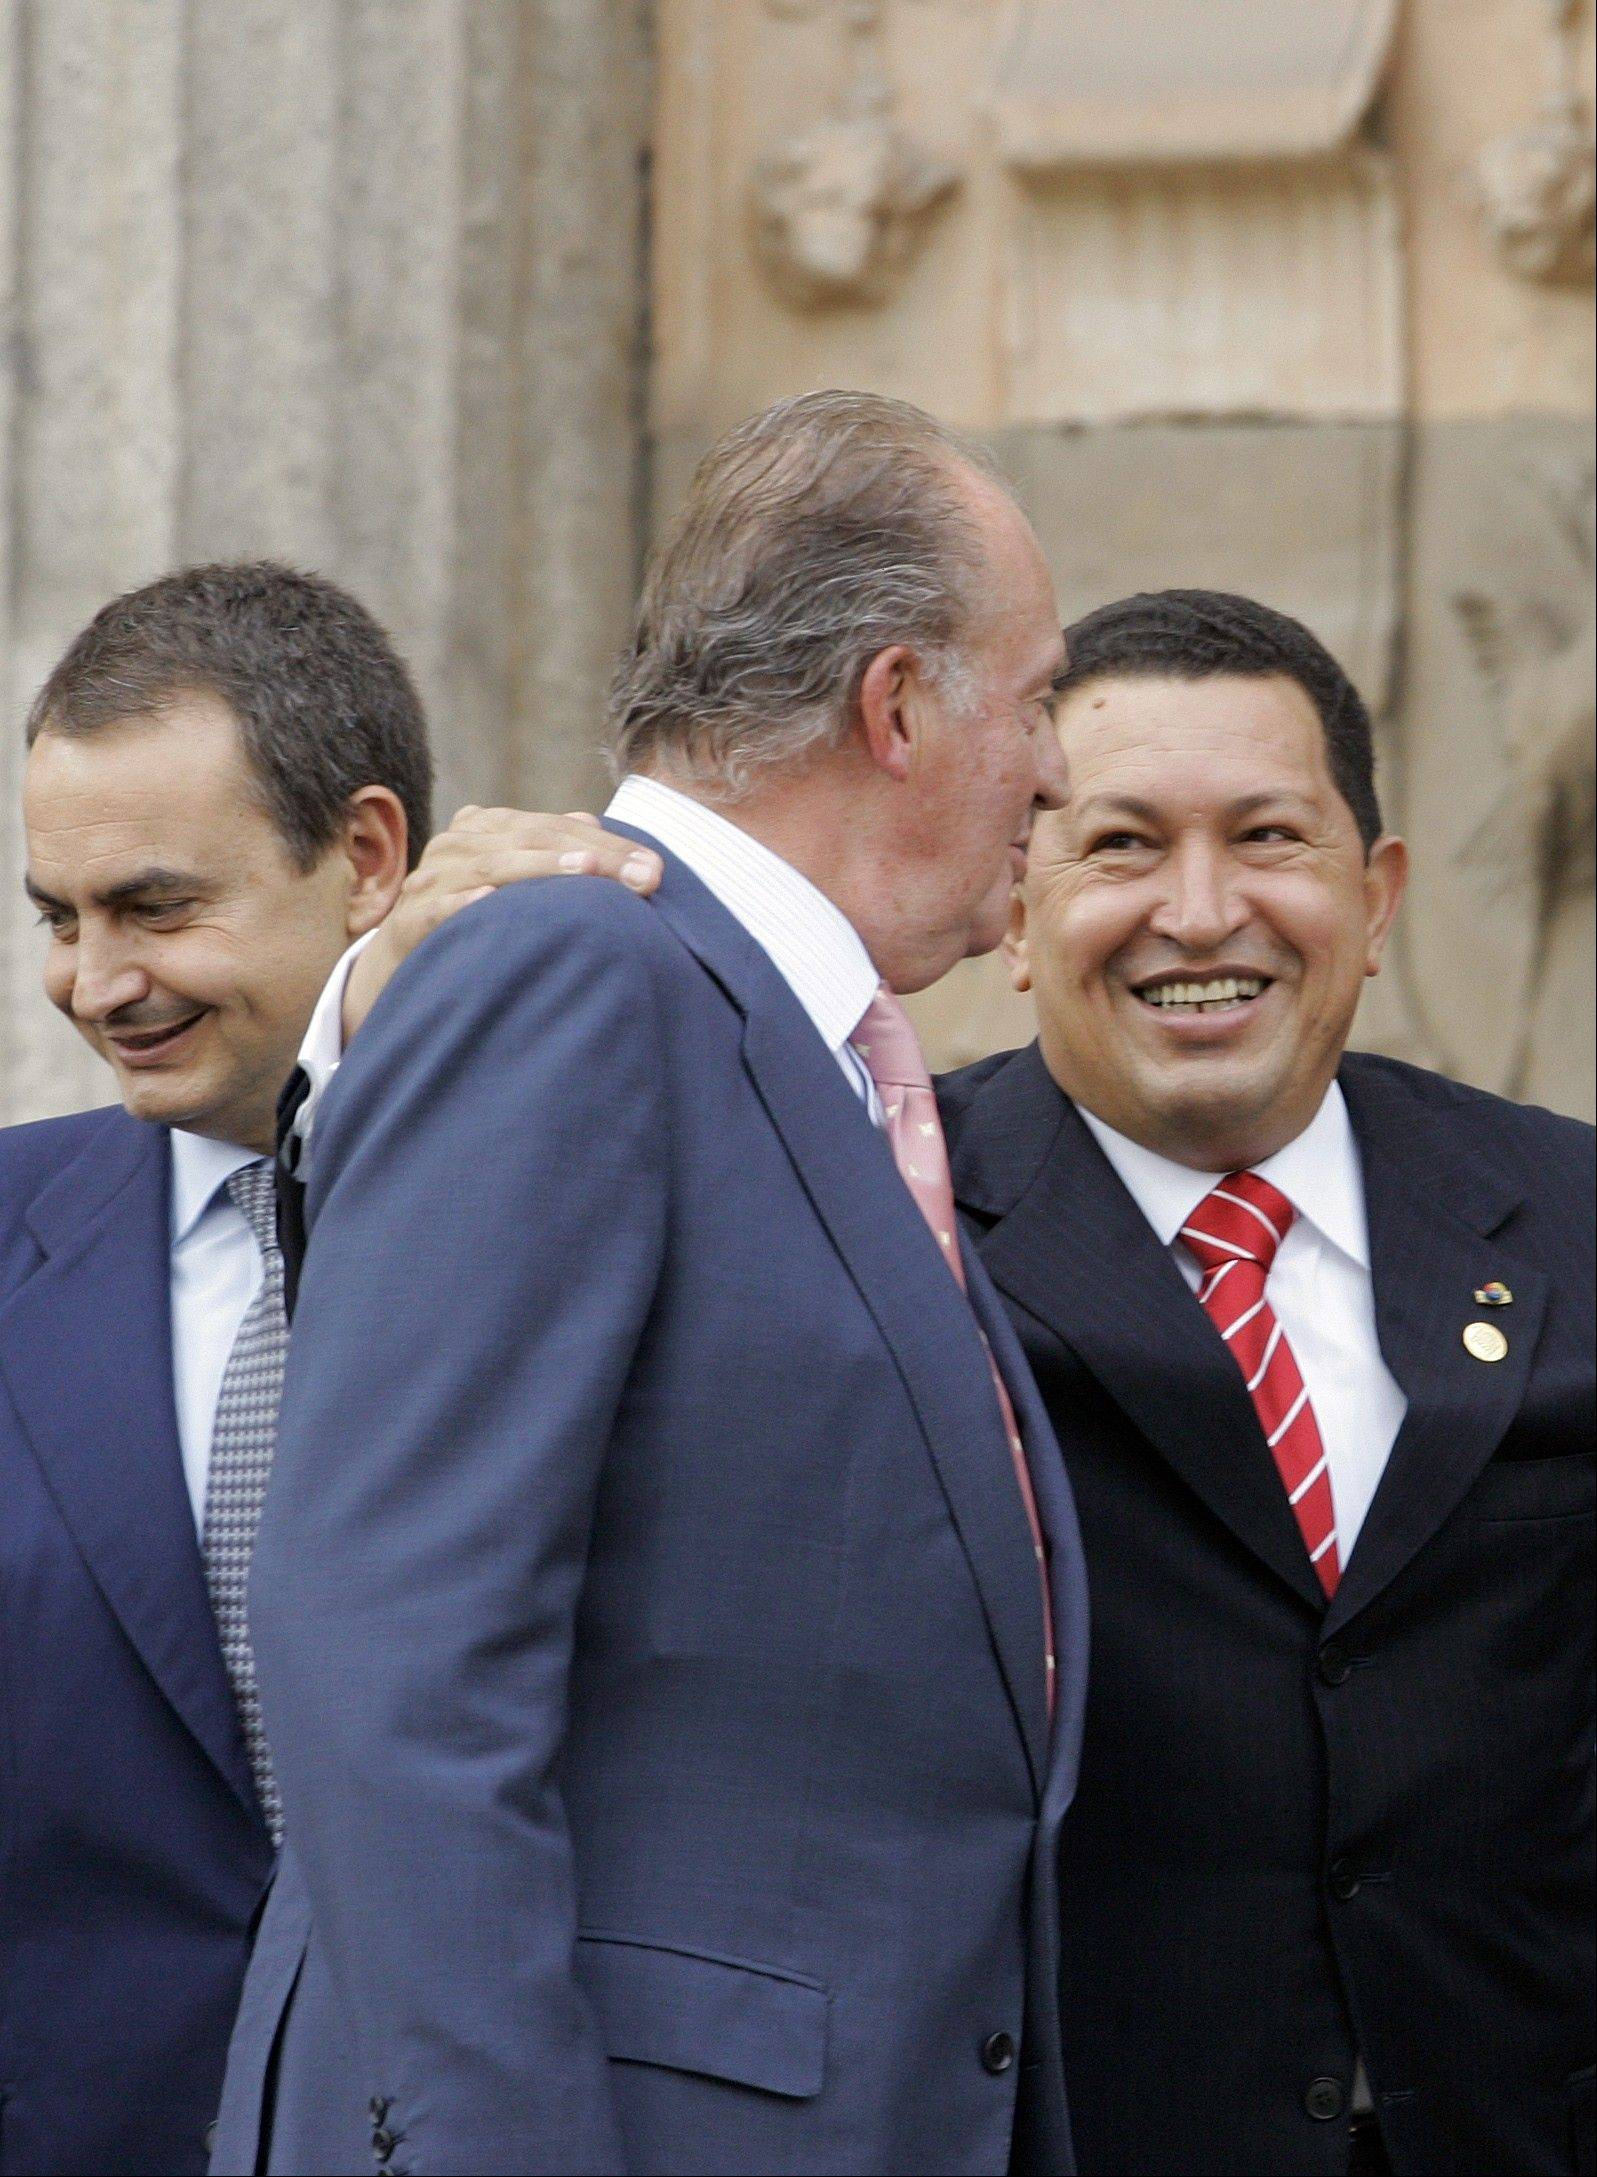 In this Oct. 14, 2005 file photo, Venezuela's President Hugo Chavez, right, talks with Spain's King Juan Carlos, center, as Spain's Prime Minister Jose Luis Rodriguez Zapatero stands at left in Salamanca, Spain.